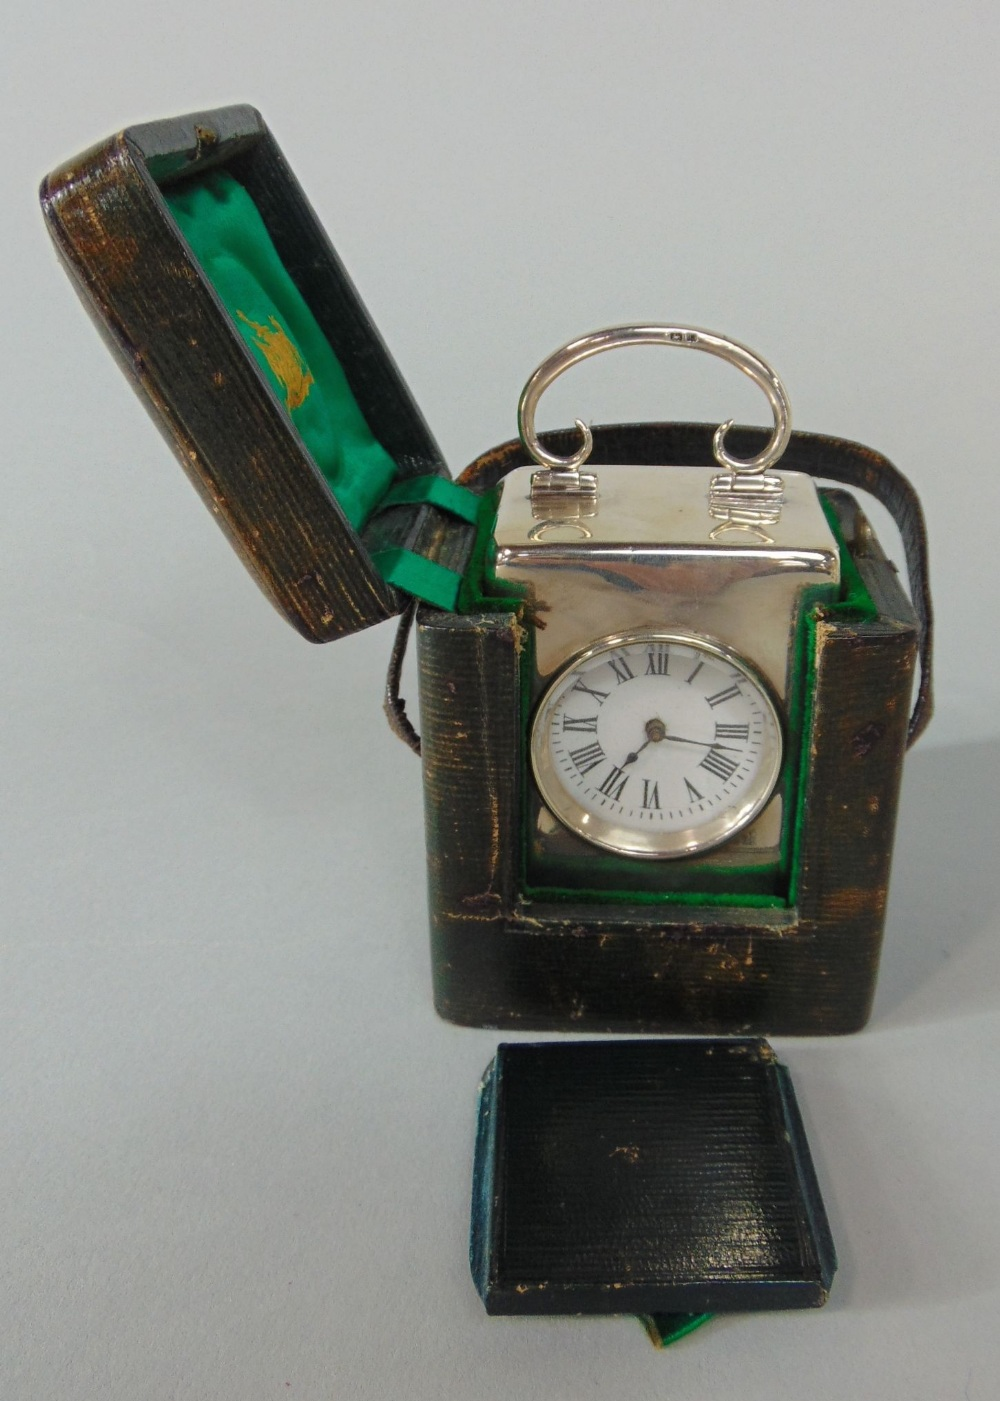 Lot 556 - Early 20th century silver cased carriage type timepiece, the enamel dial with Roman numerals, the